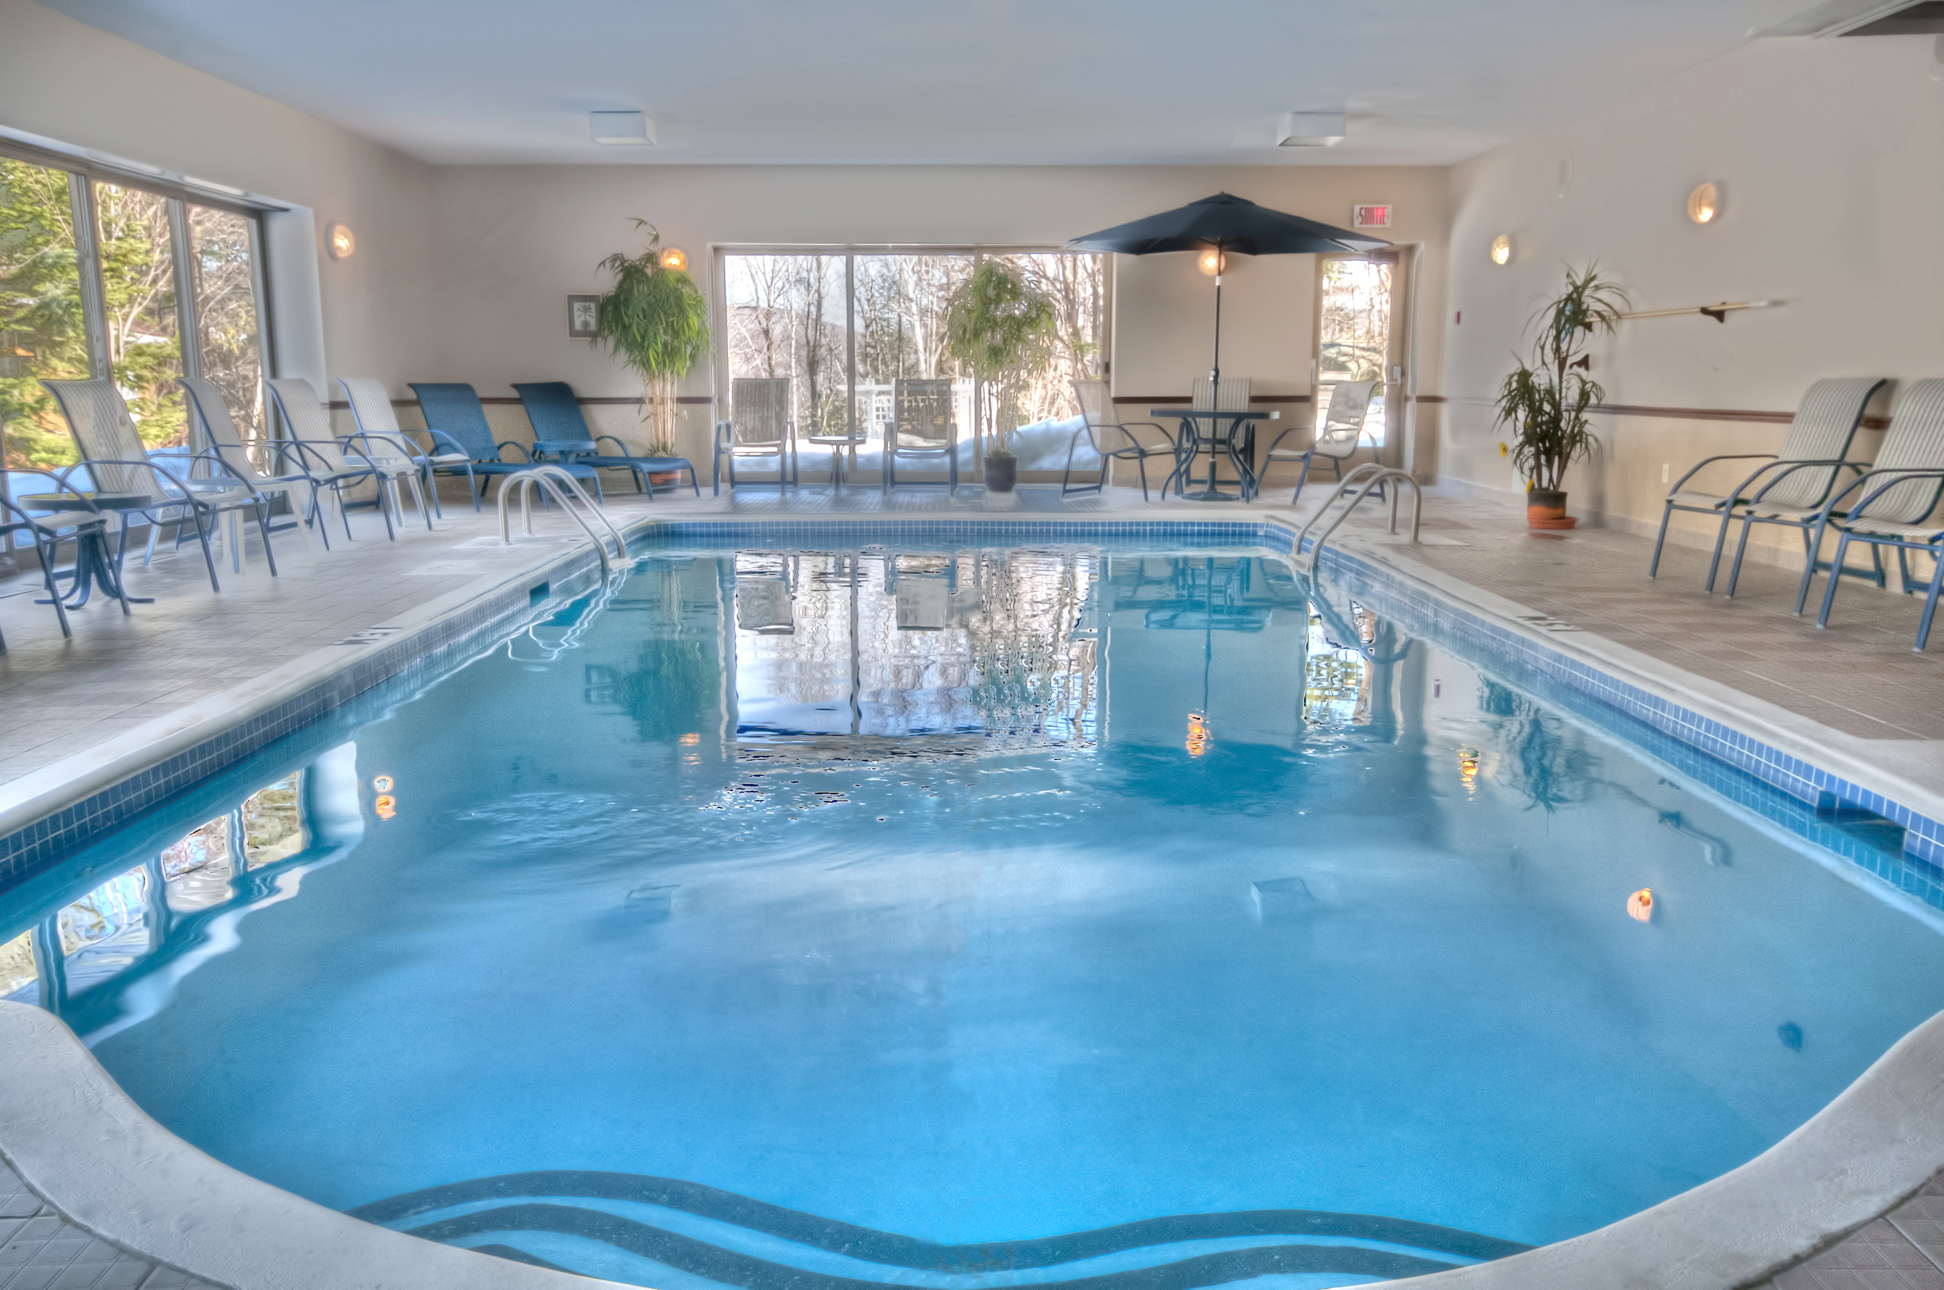 Auberge val saint c me municipalit de saint c me for Piscine val d europe